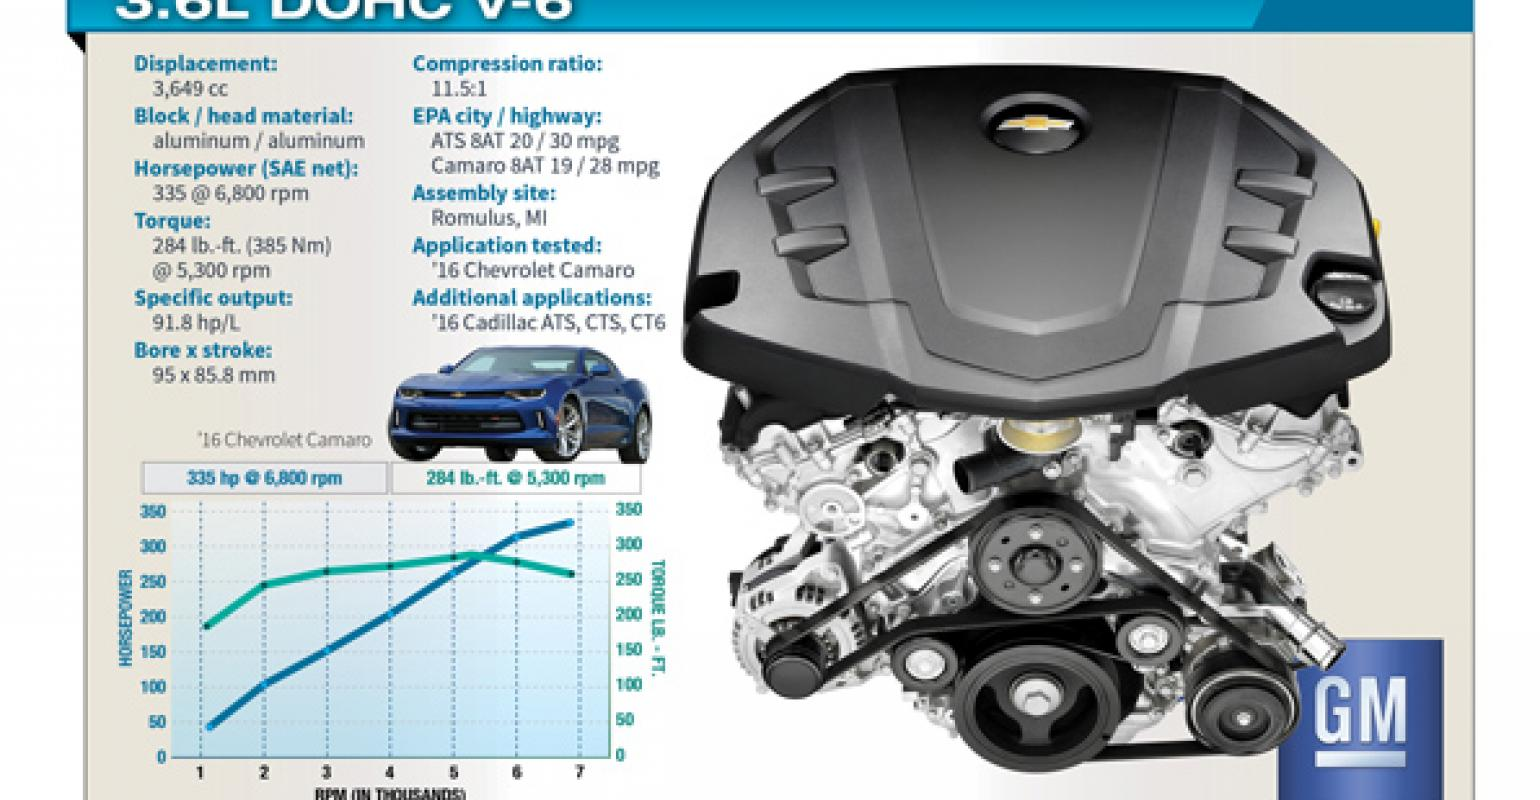 [DIAGRAM_3ER]  Innovation, Refinement Distinguish GM's 3.6L V-6 Camaro, Cadillac Engine |  WardsAuto | Cadillac 6 0 Engine Diagram |  | WardsAuto